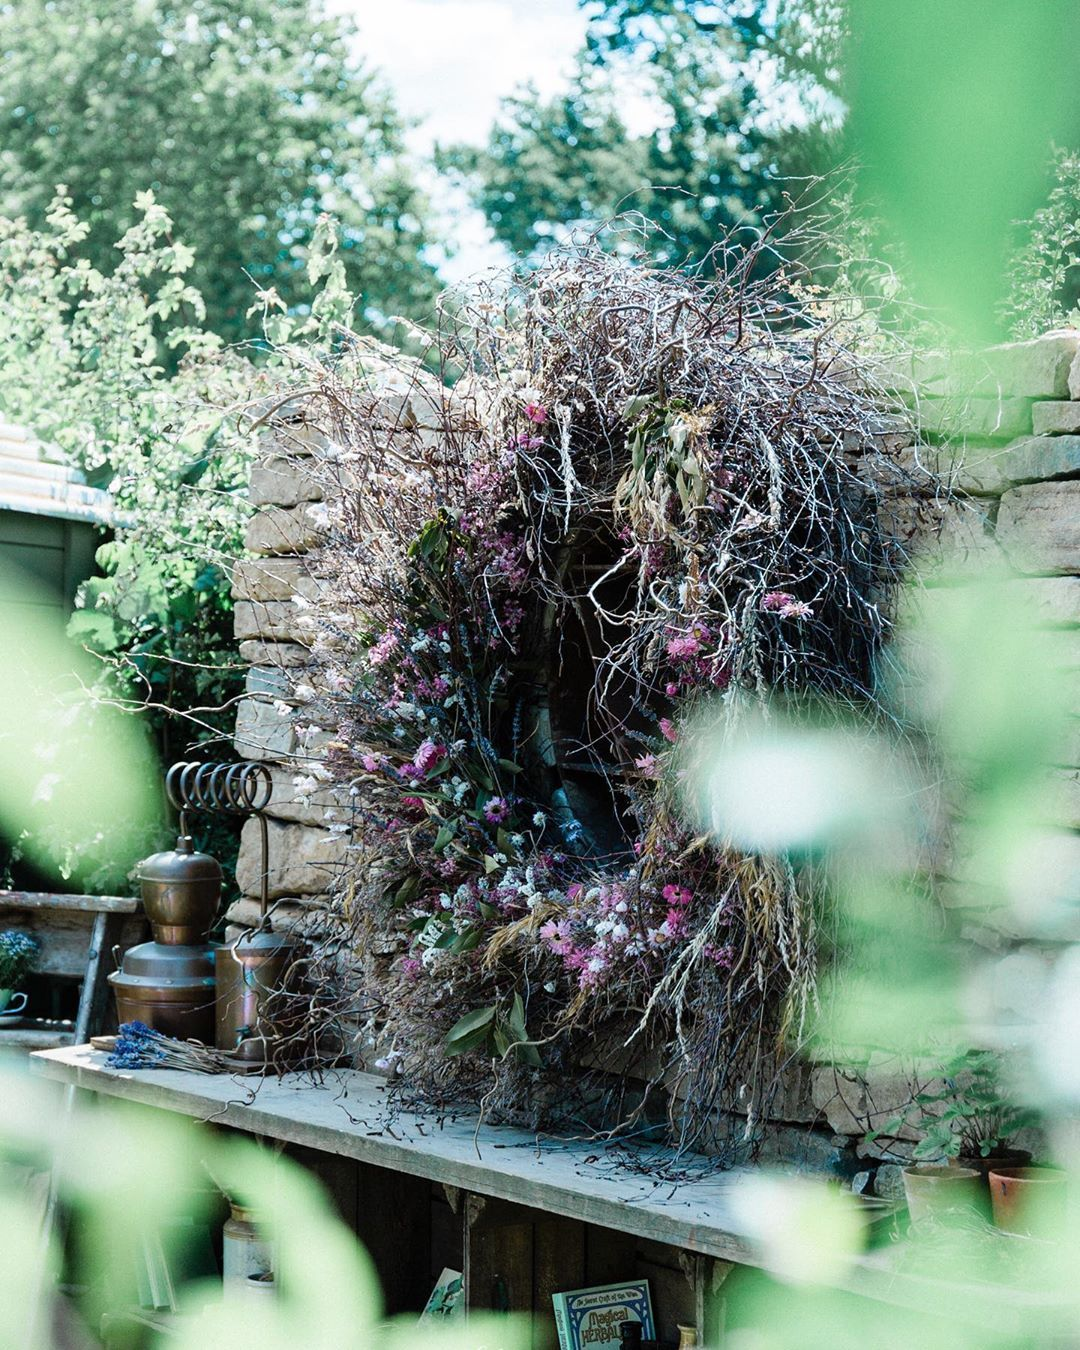 If You Visit The Rhs Hampton Court Palace Garden Festival This Week Make Sure To Visit The Naturecraft Garden Designed By Garten See